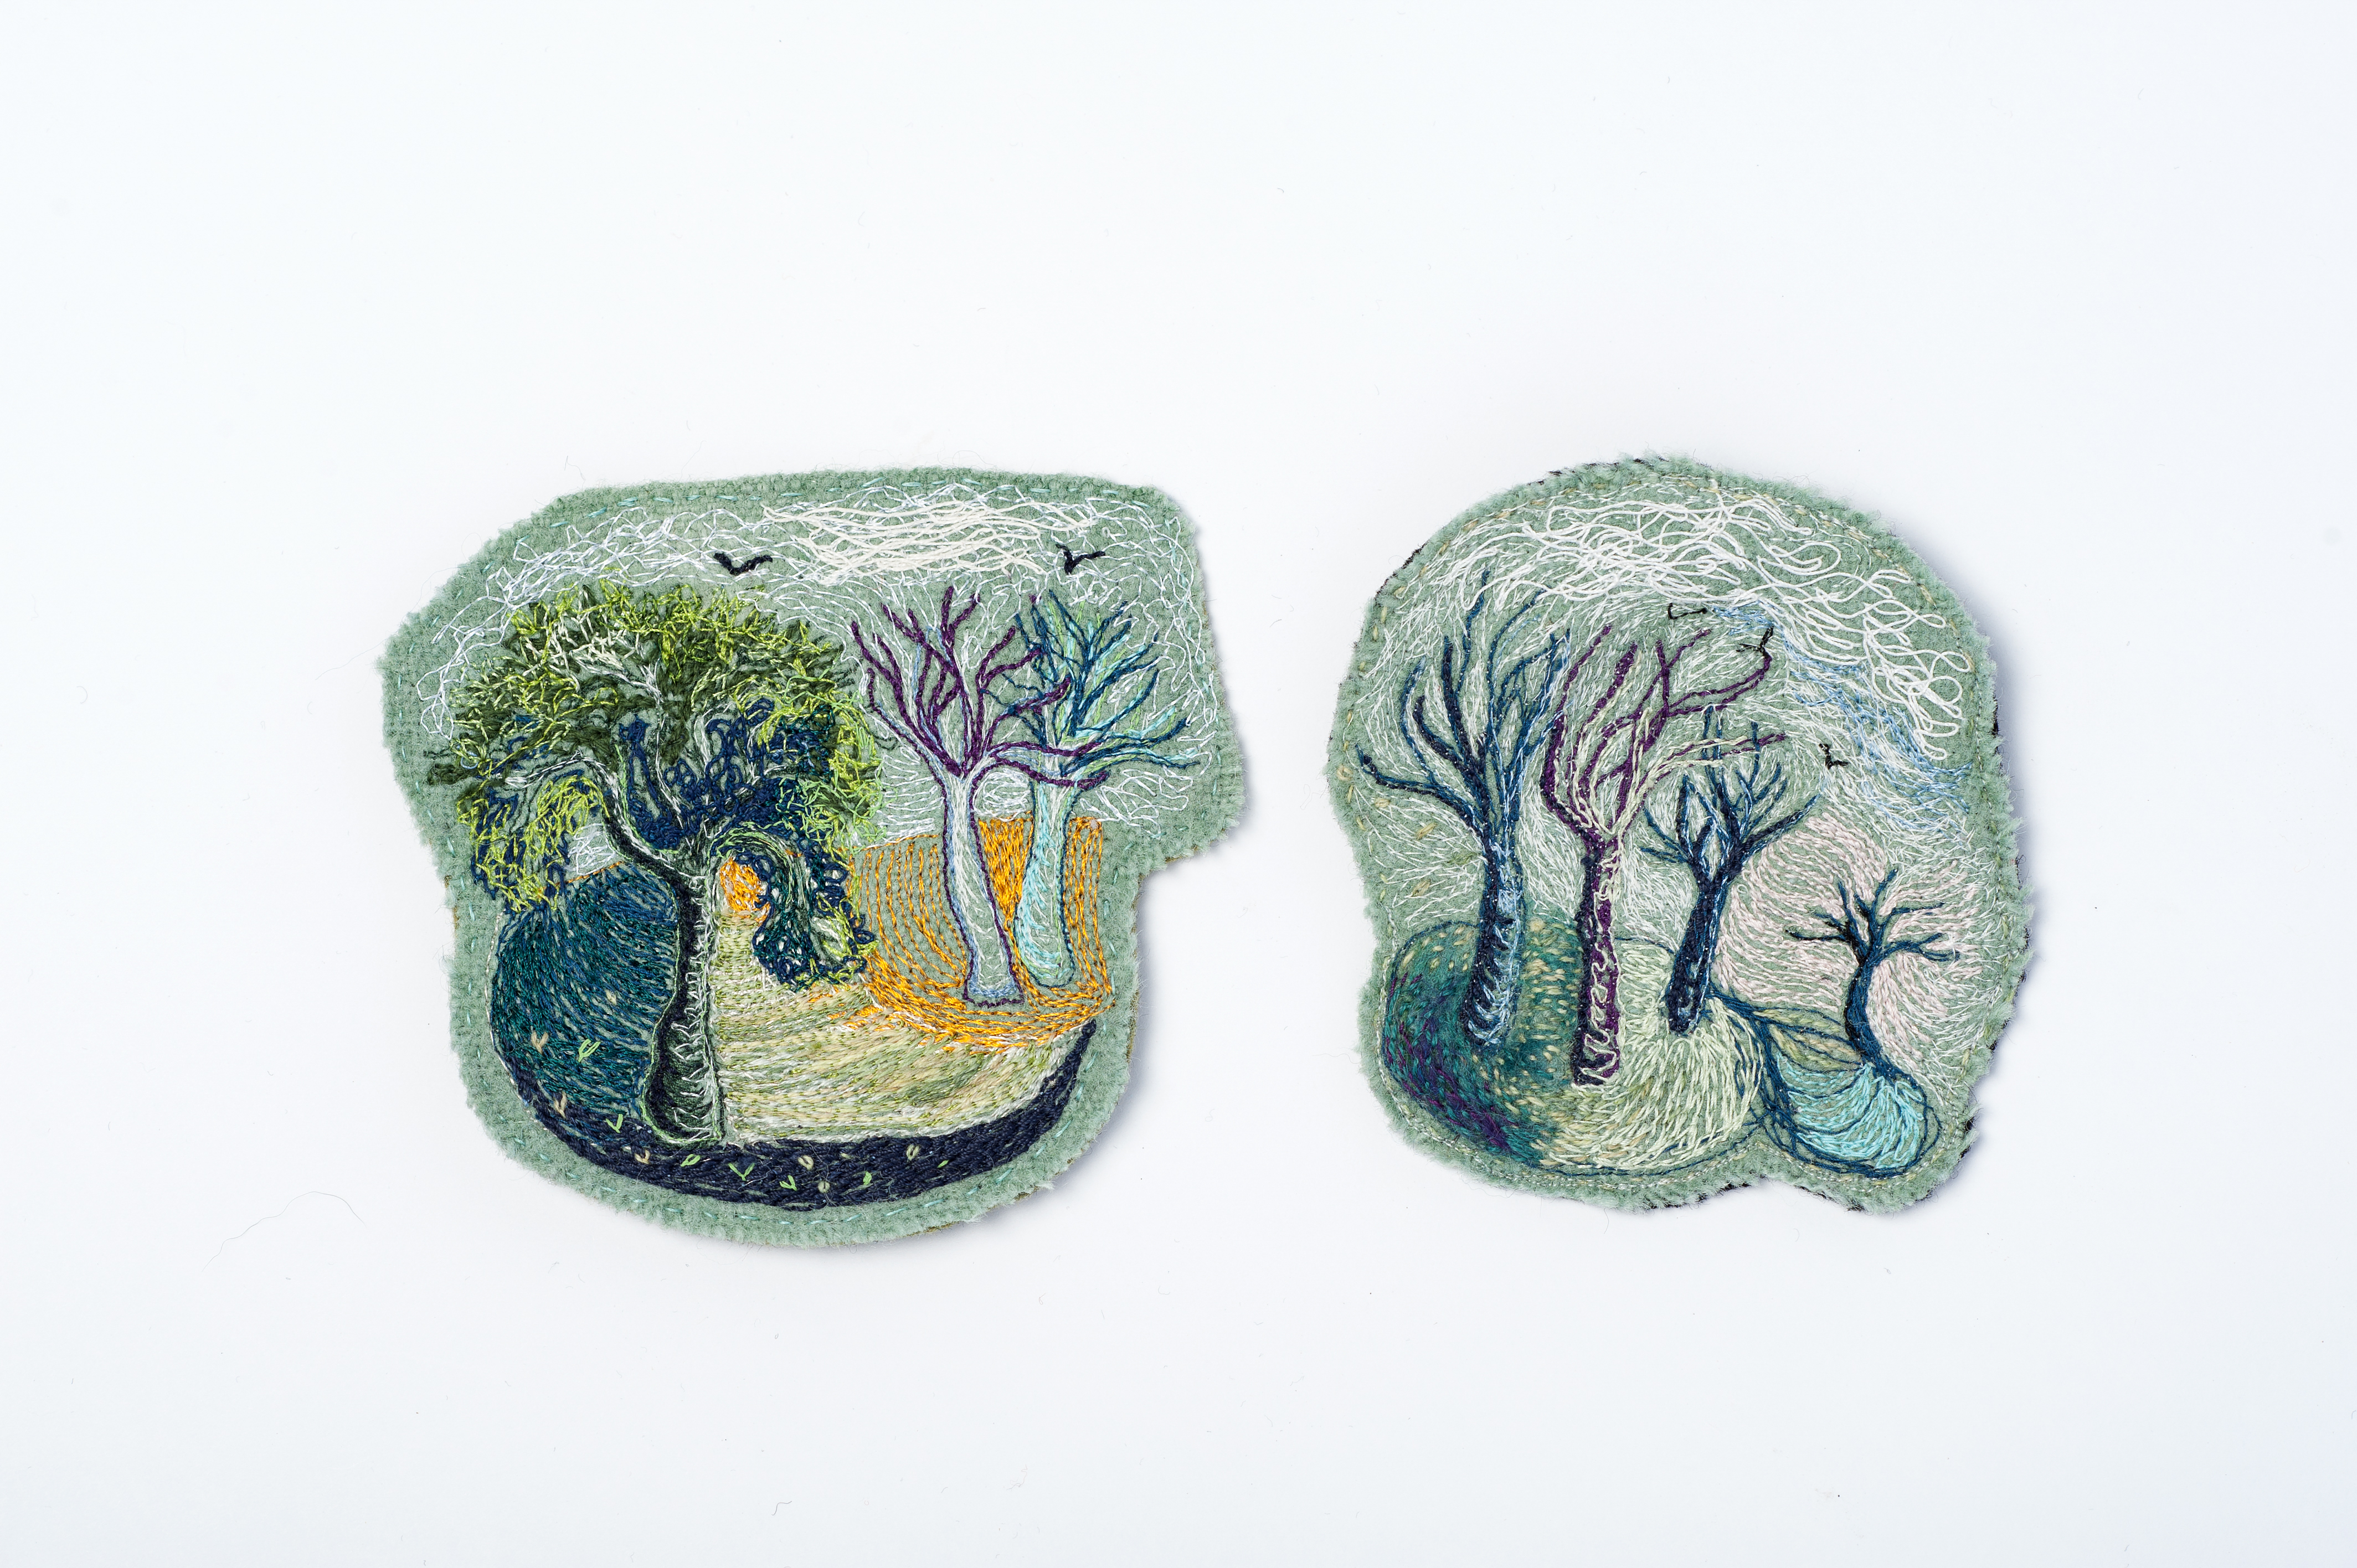 Two small flat pieces are heavily embroidered with imags of trees which look like they are blowing in the wind.